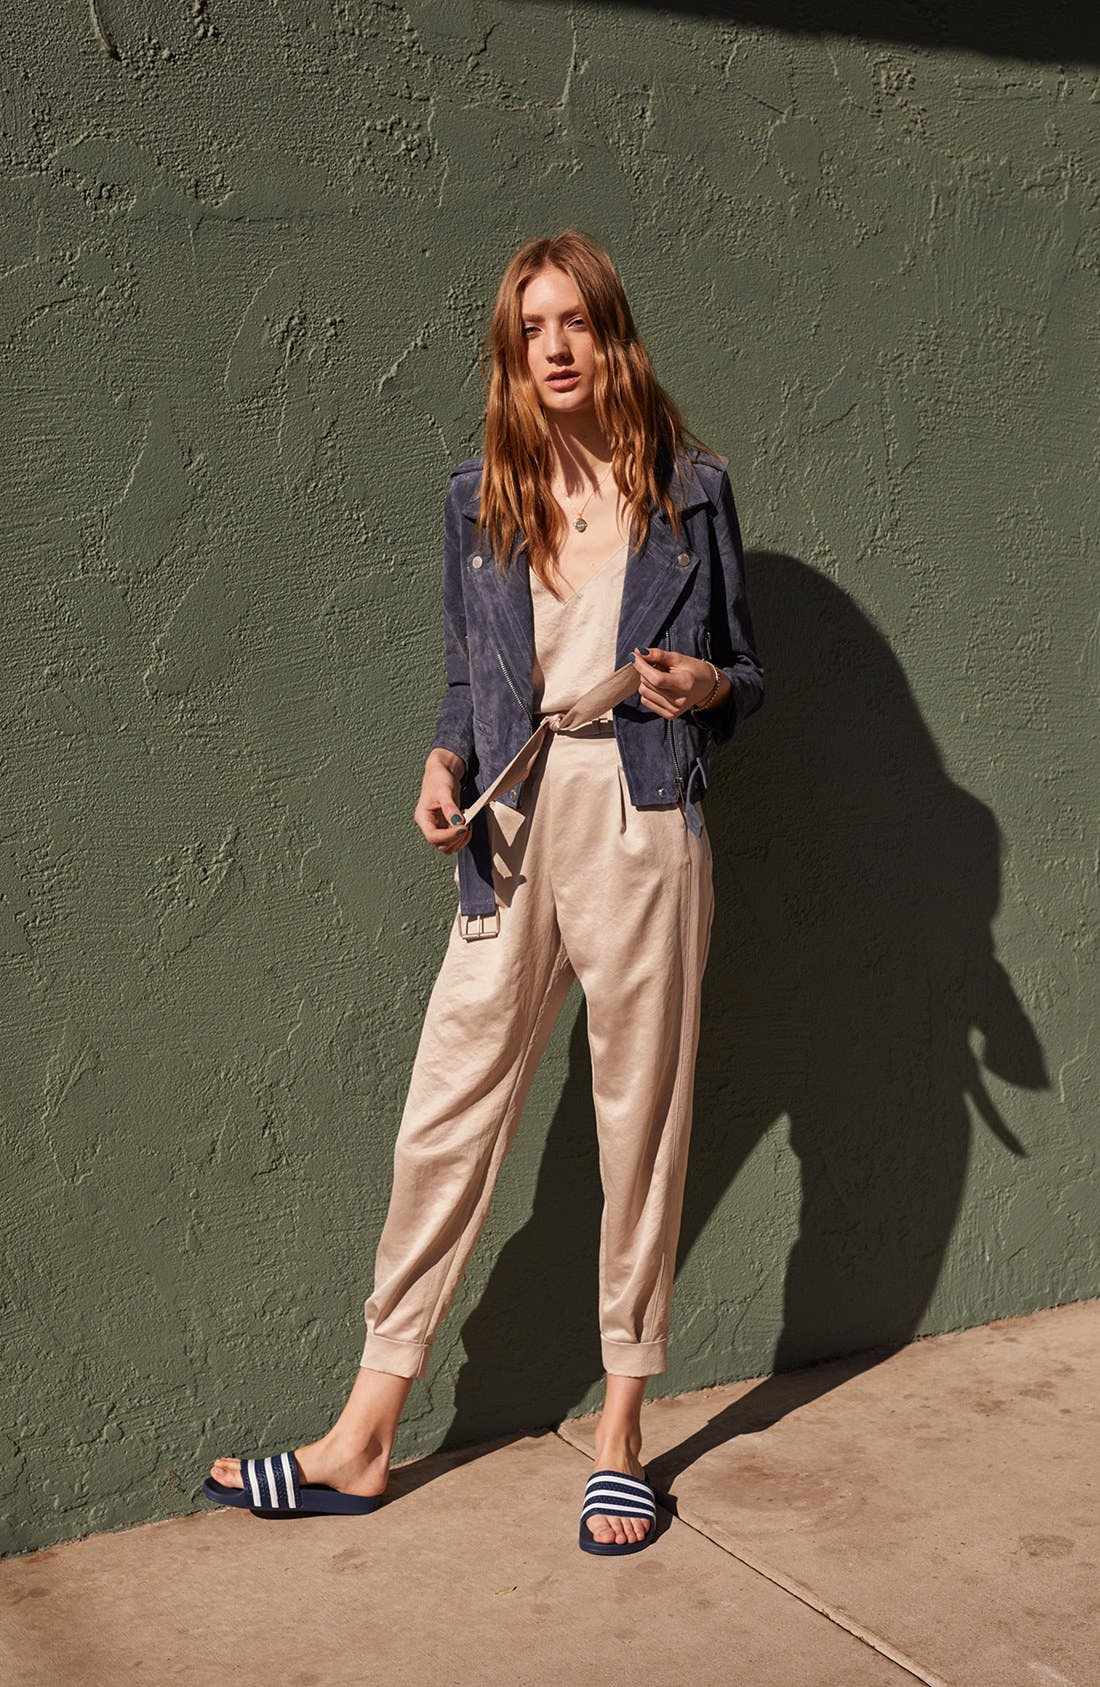 BLANKNYC Jacket, Leith Camisole & Pants Outfit with Accessories